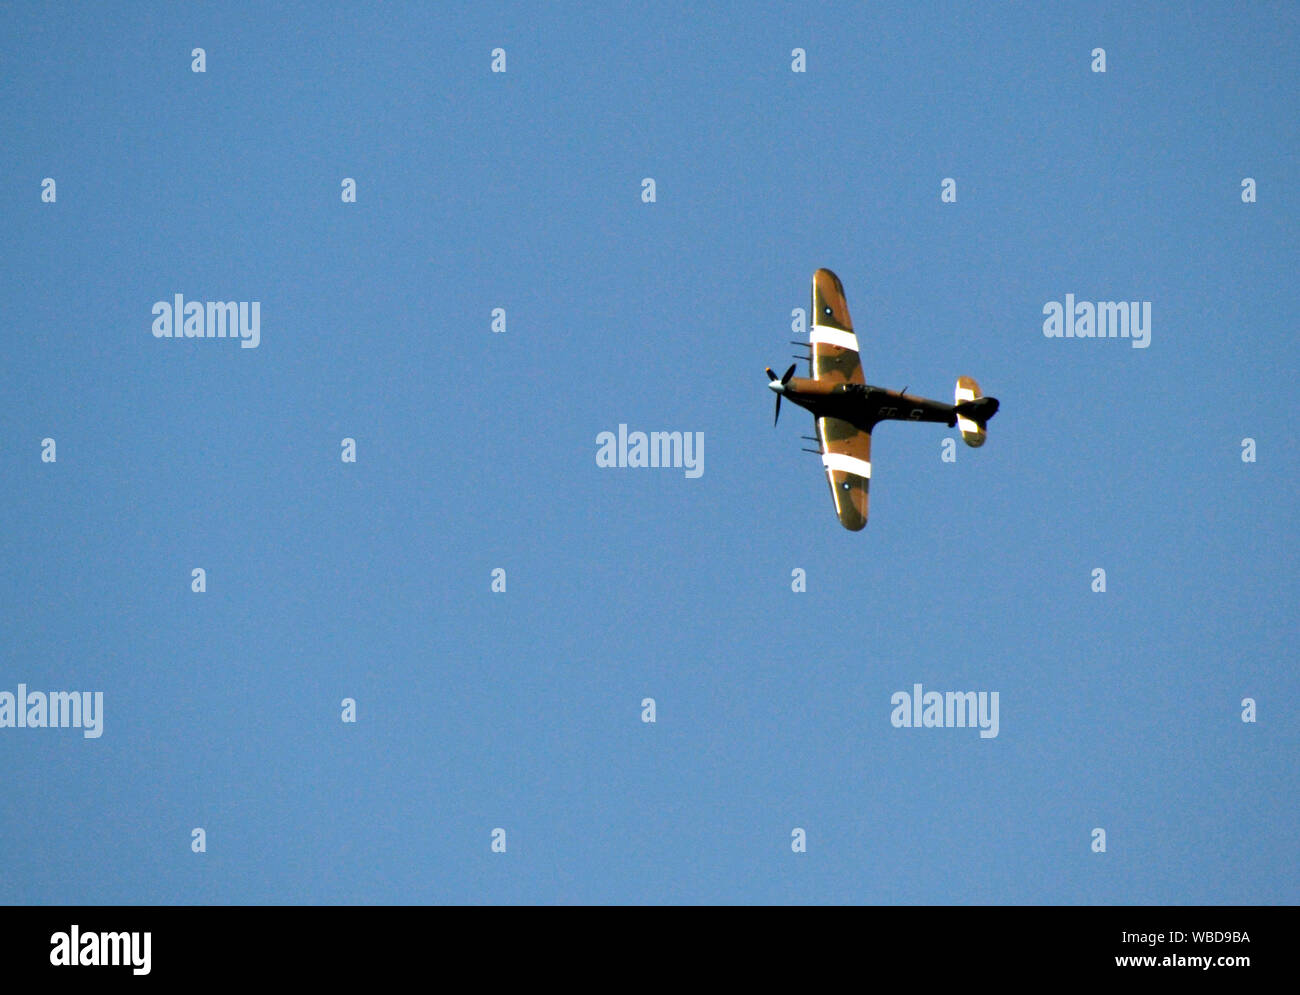 August Bank Holiday Monday 2019. Hurricane military plane flypast at Hazlemere Fete, Buckinghamshire, UK. 26/8/19 Stock Photo